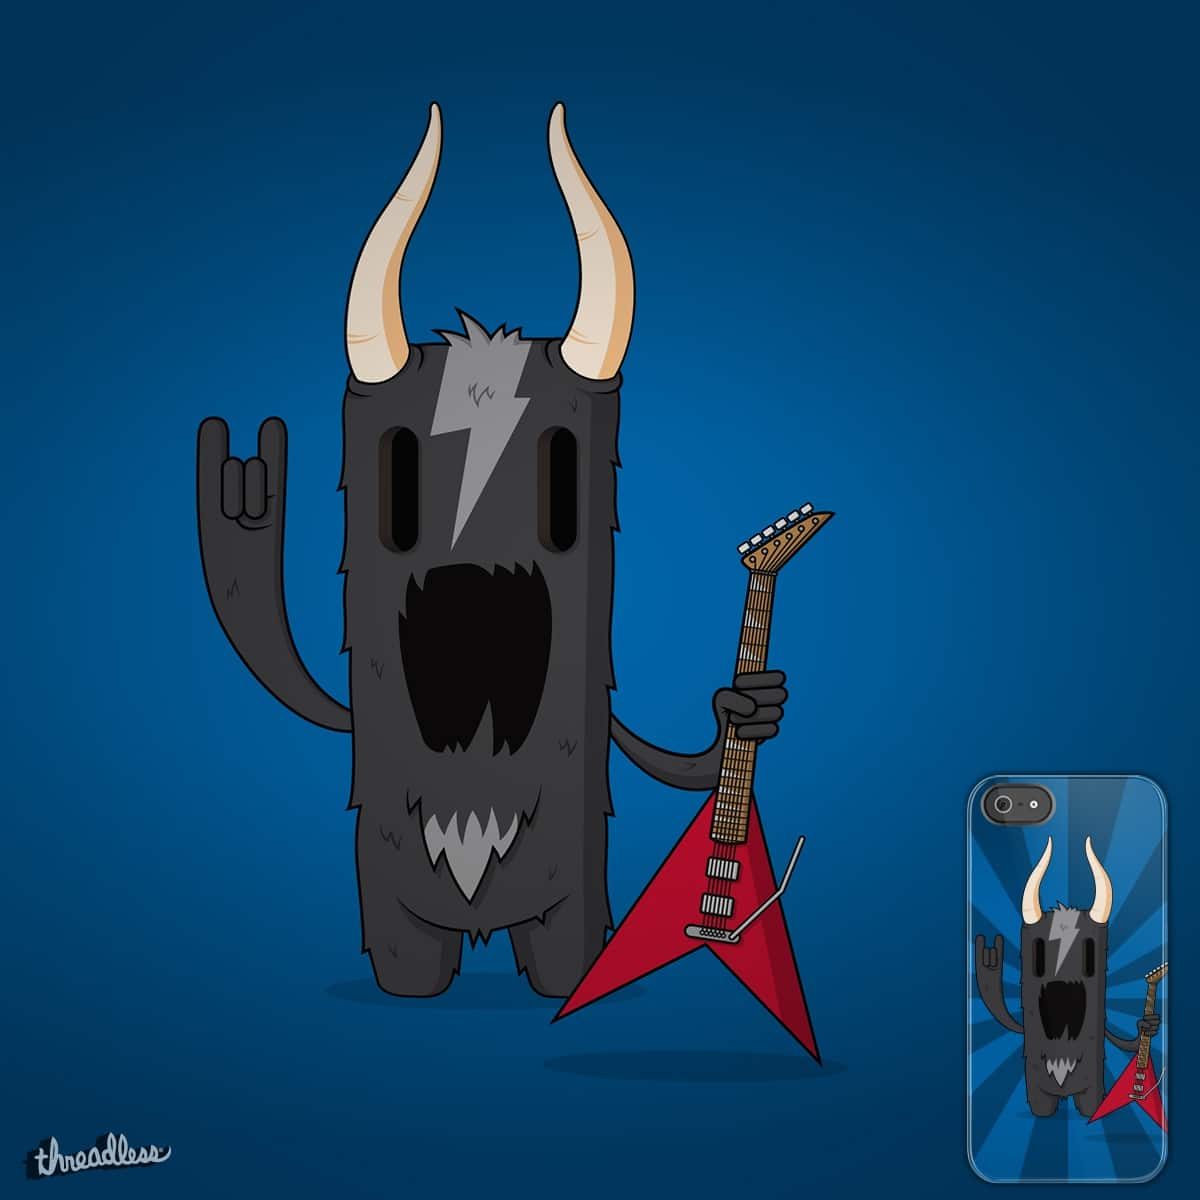 Migral! by guilleorlando on Threadless